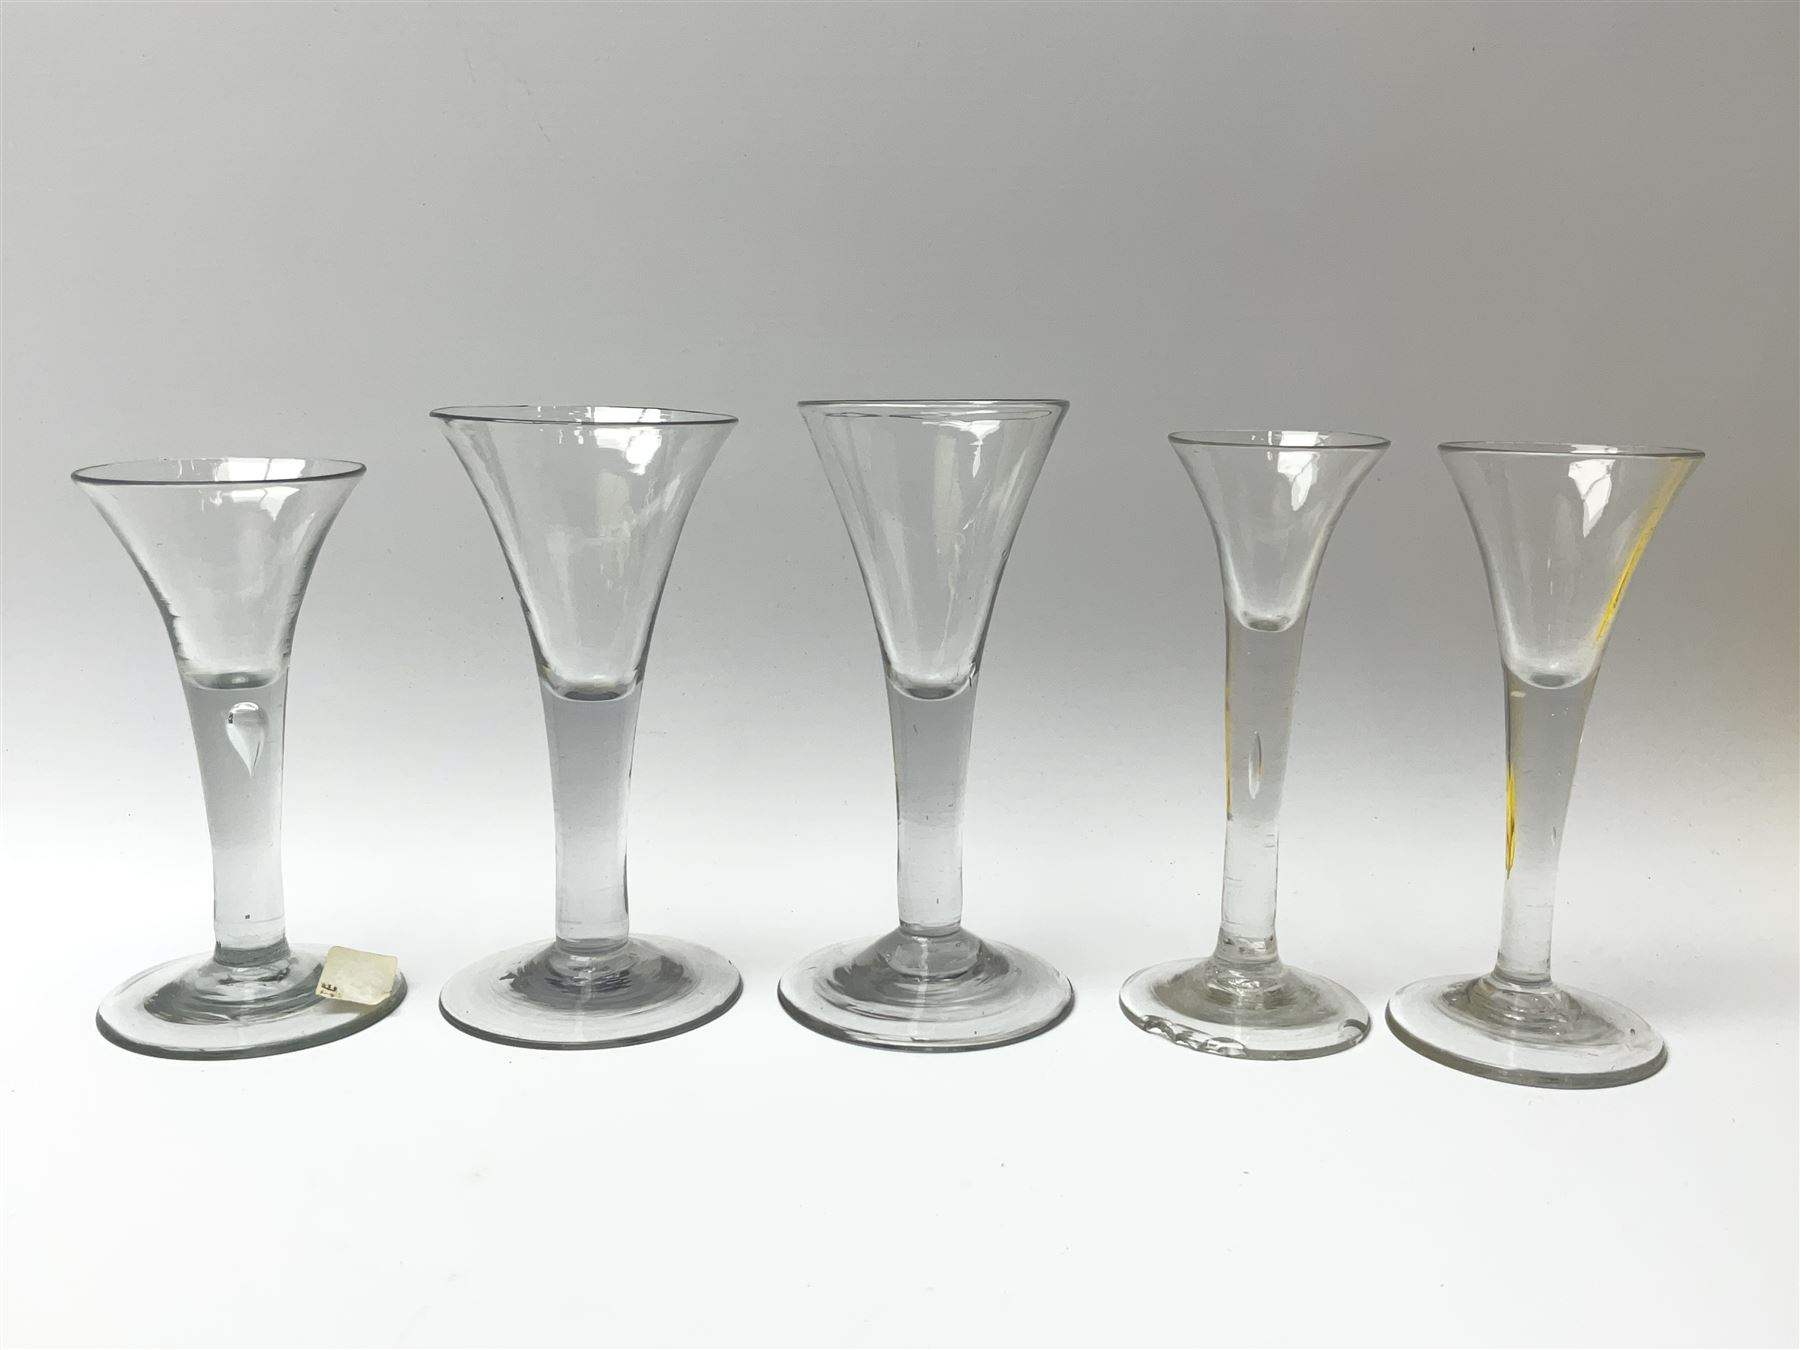 Five 18th century drinking glasses